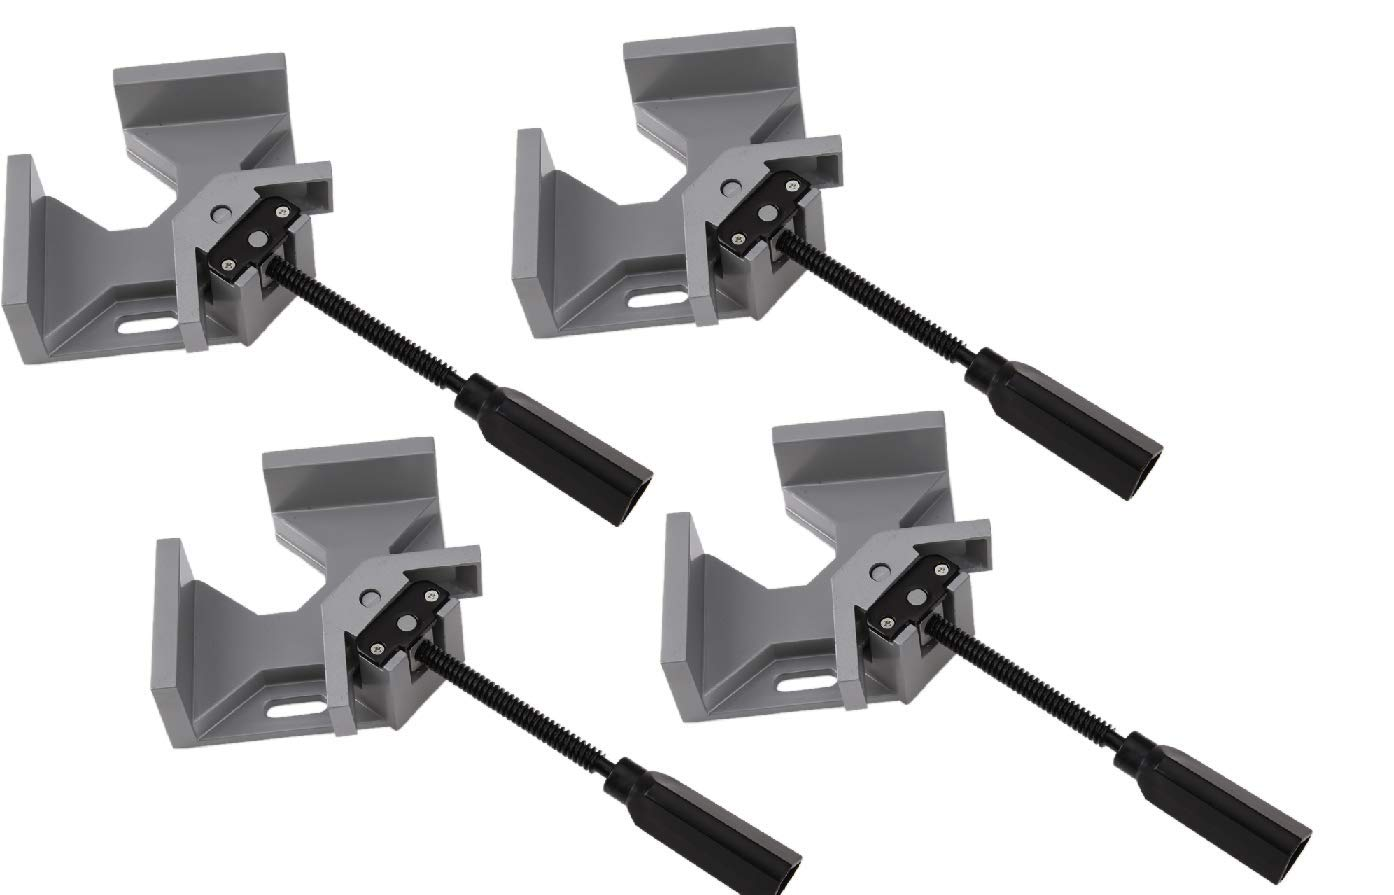 Rungfa Set of 4 Corner Right Angle Vice Clamps Metal Welding Woodworking 90 Degree